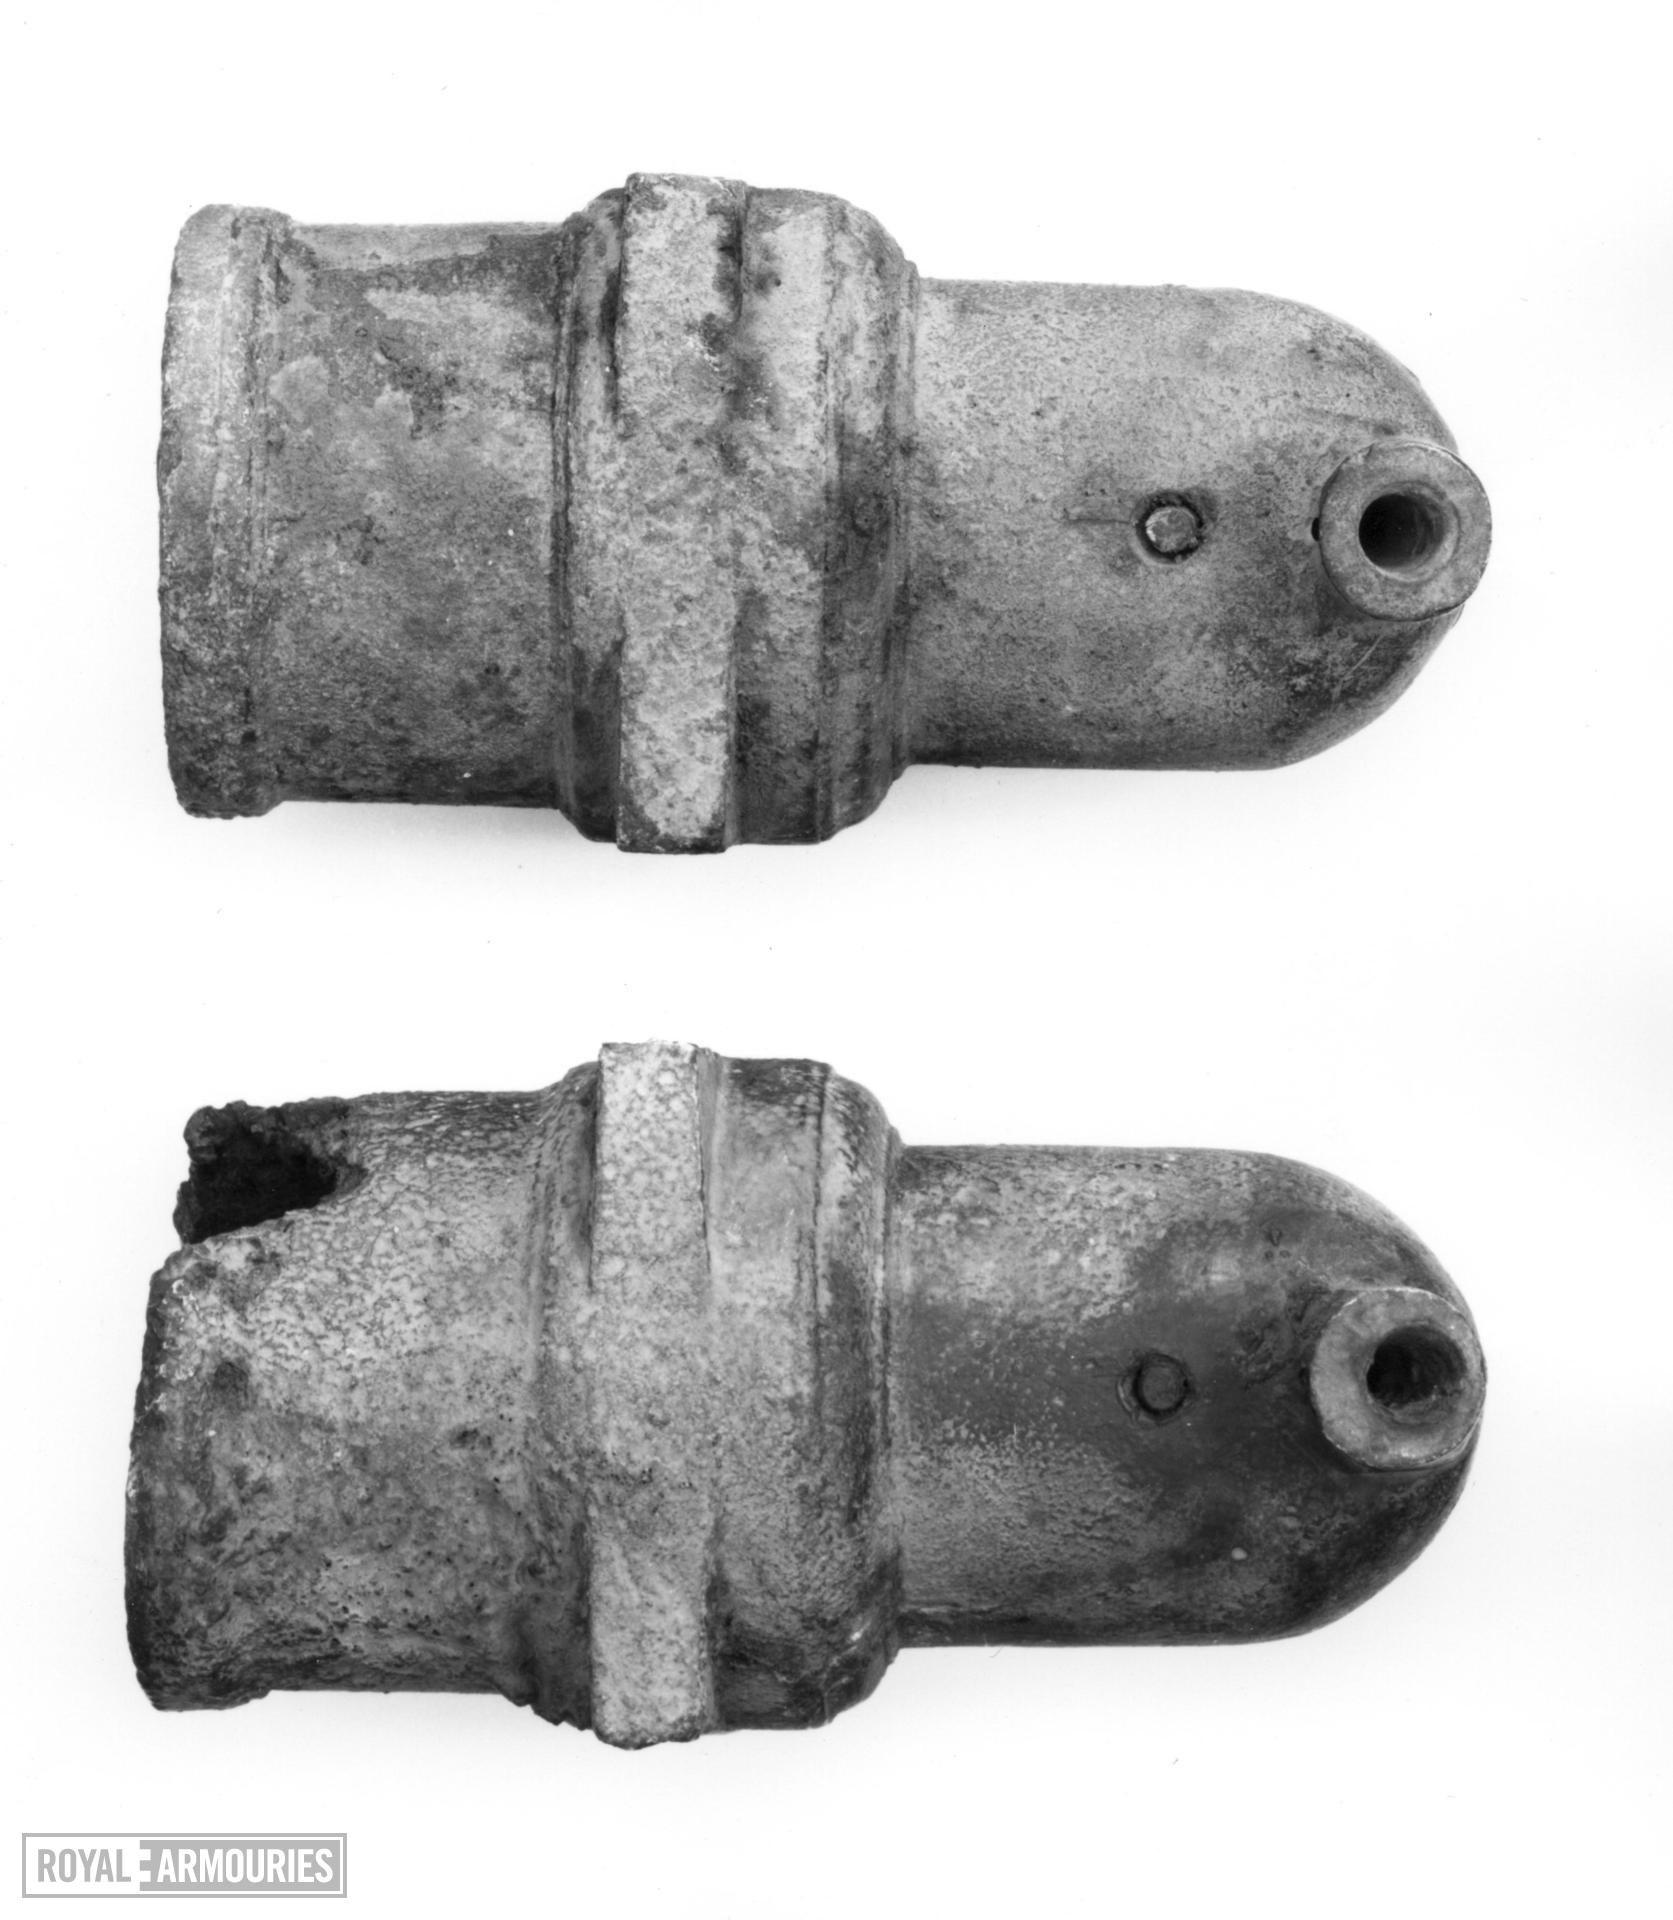 3.25 in mortar Made of bronze One of two mortars see also XIX.282